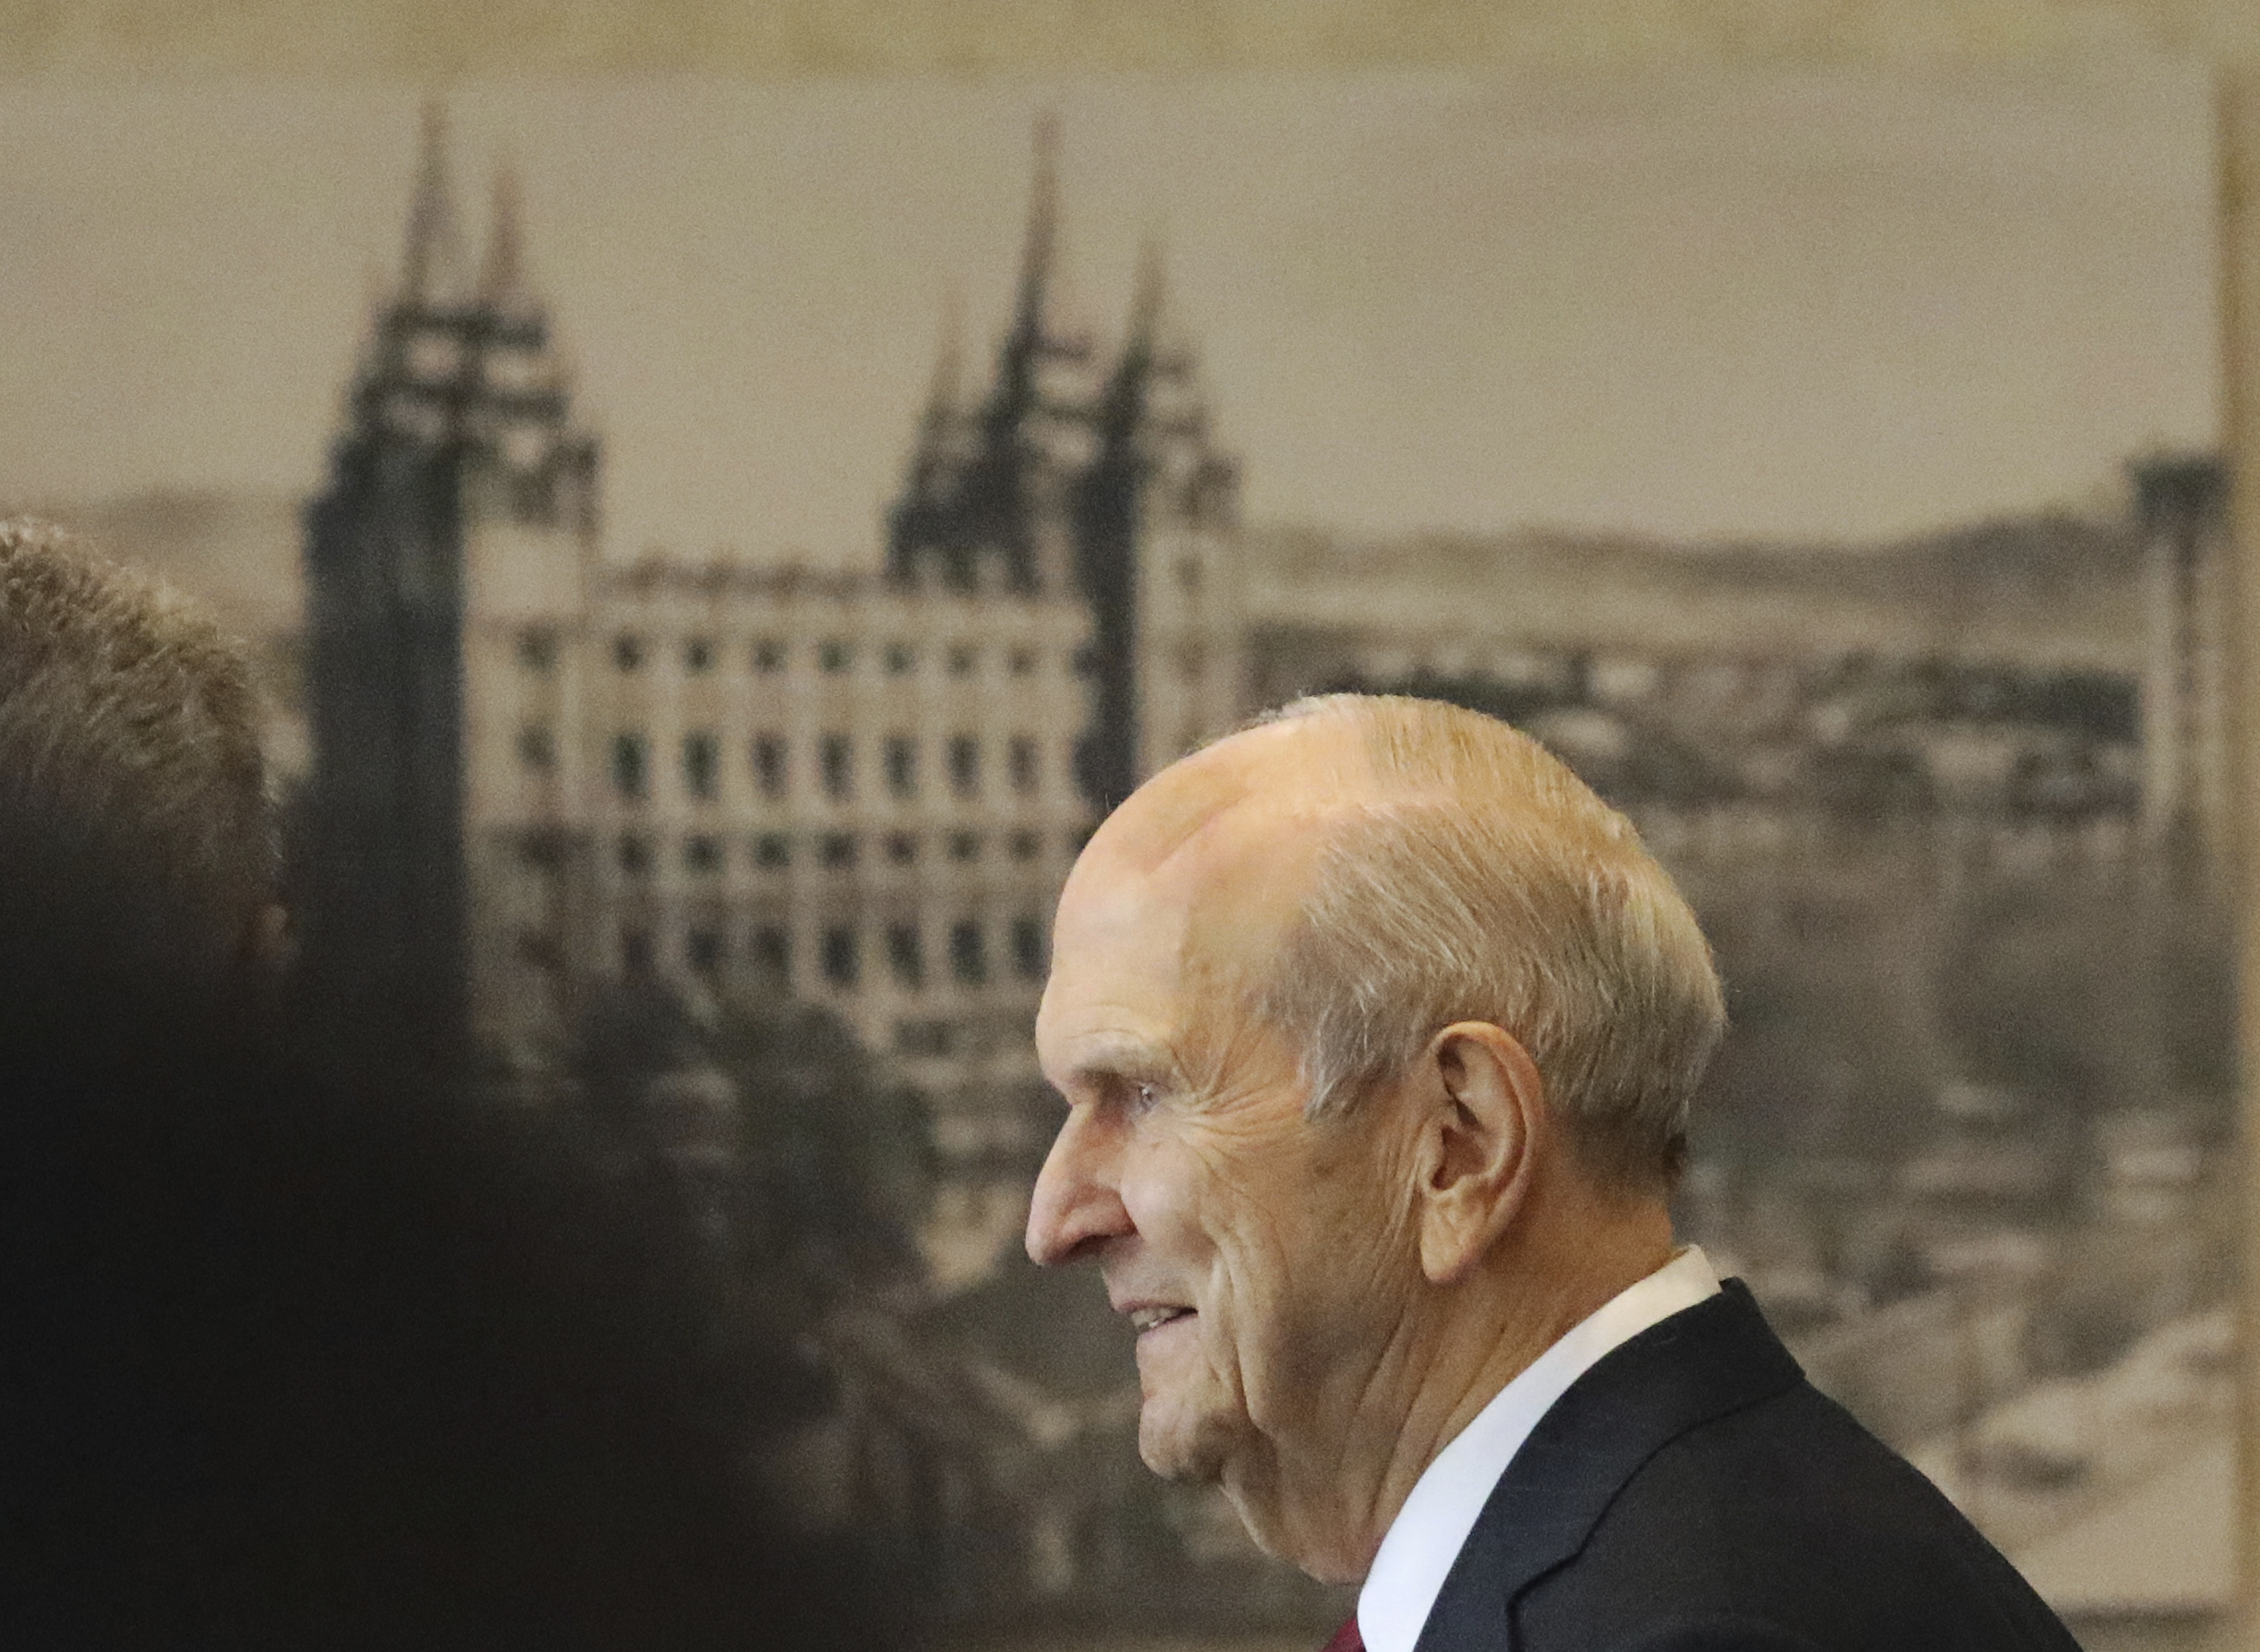 The Church of Jesus Christ of Latter-day Saints President Russell M. Nelson departs after a news conference at the Temple Square South Visitors Center Friday, April 19, 2019, in Salt Lake City. An iconic temple central to The Church of Jesus Christ of Latter-day Saints faith will close for four years to complete a major renovation, and officials are keeping a careful eye on construction plans after a devastating fire at Notre Dame cathedral in Paris. Nelson said the closure will begin in December. (AP Photo/Rick Bowmer)